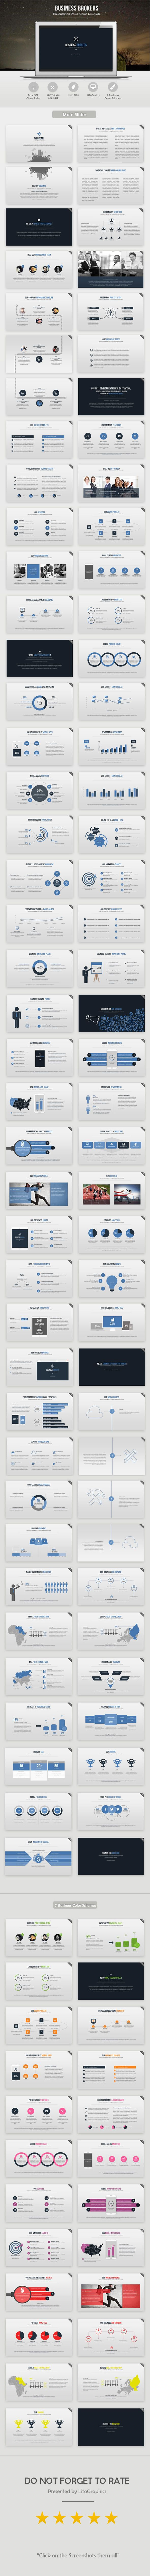 480 best good powerpoint images on pinterest info graphics